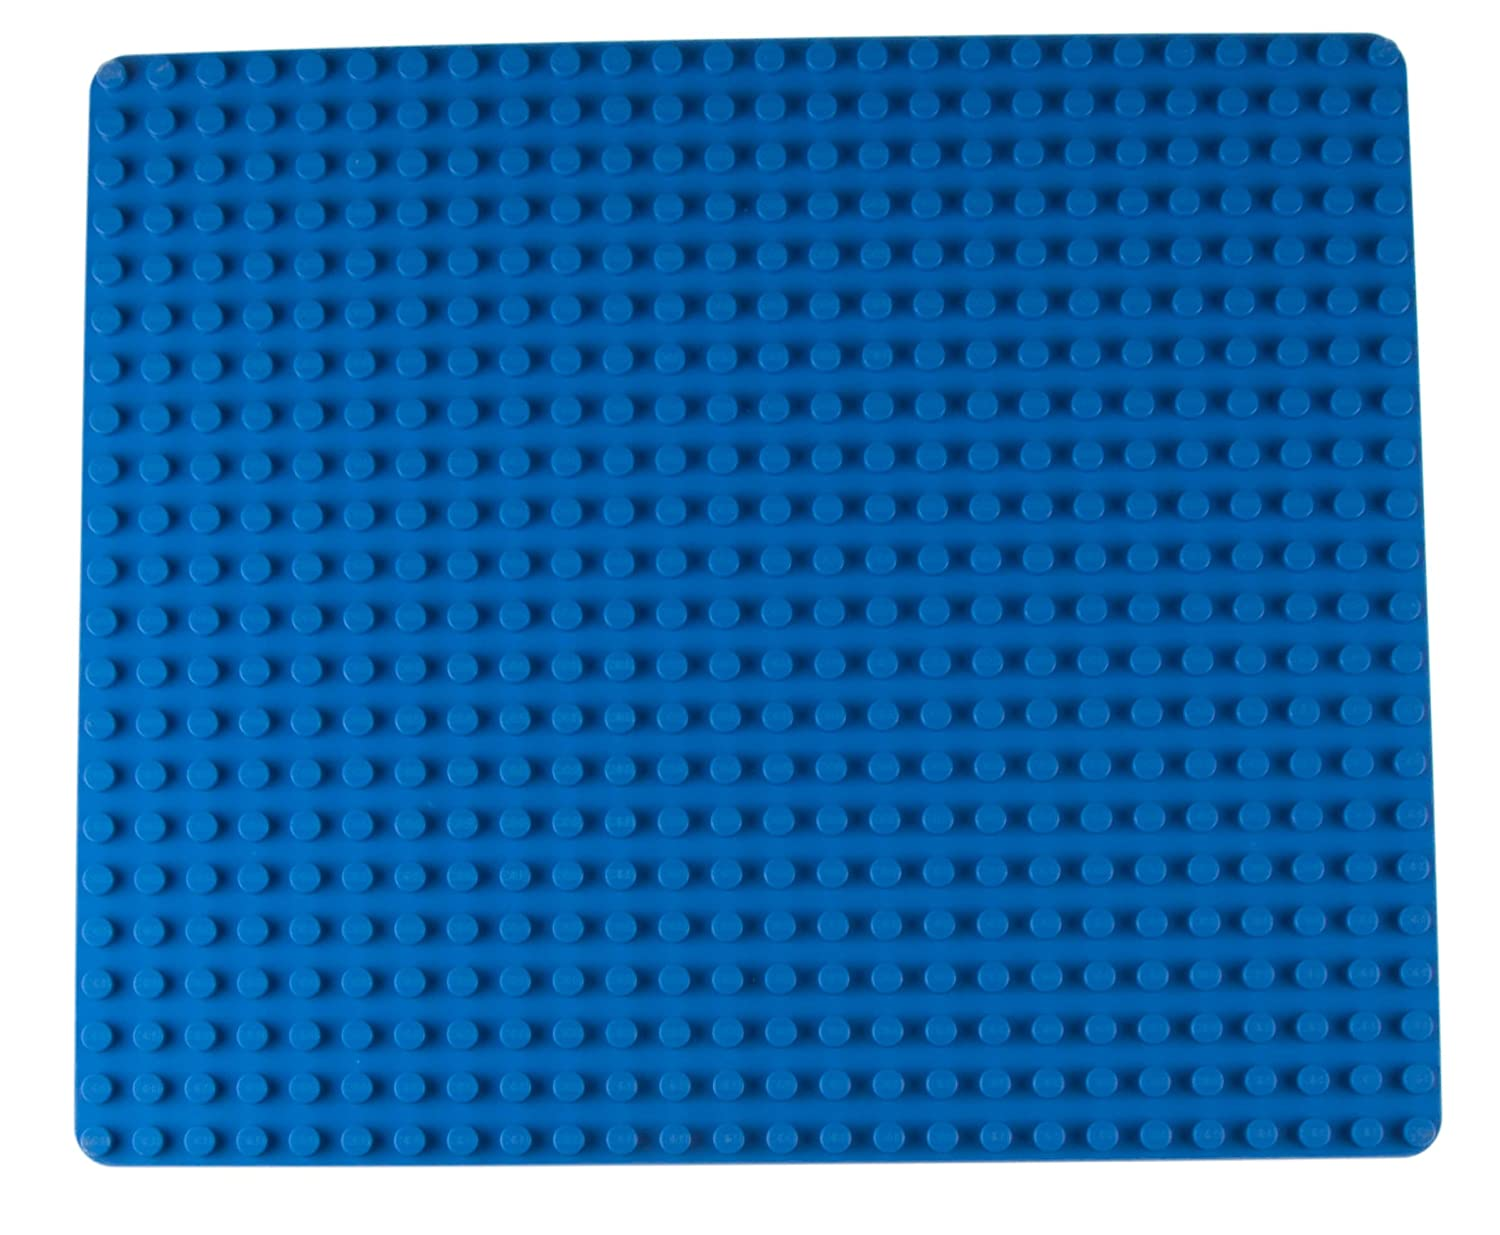 "Classic Big Briks Baseplate by Strictly Briks | 100% Compatible with All Major Brands | Large Pegs for Toddlers | 13.75"" x 16.25"" Building Brick 